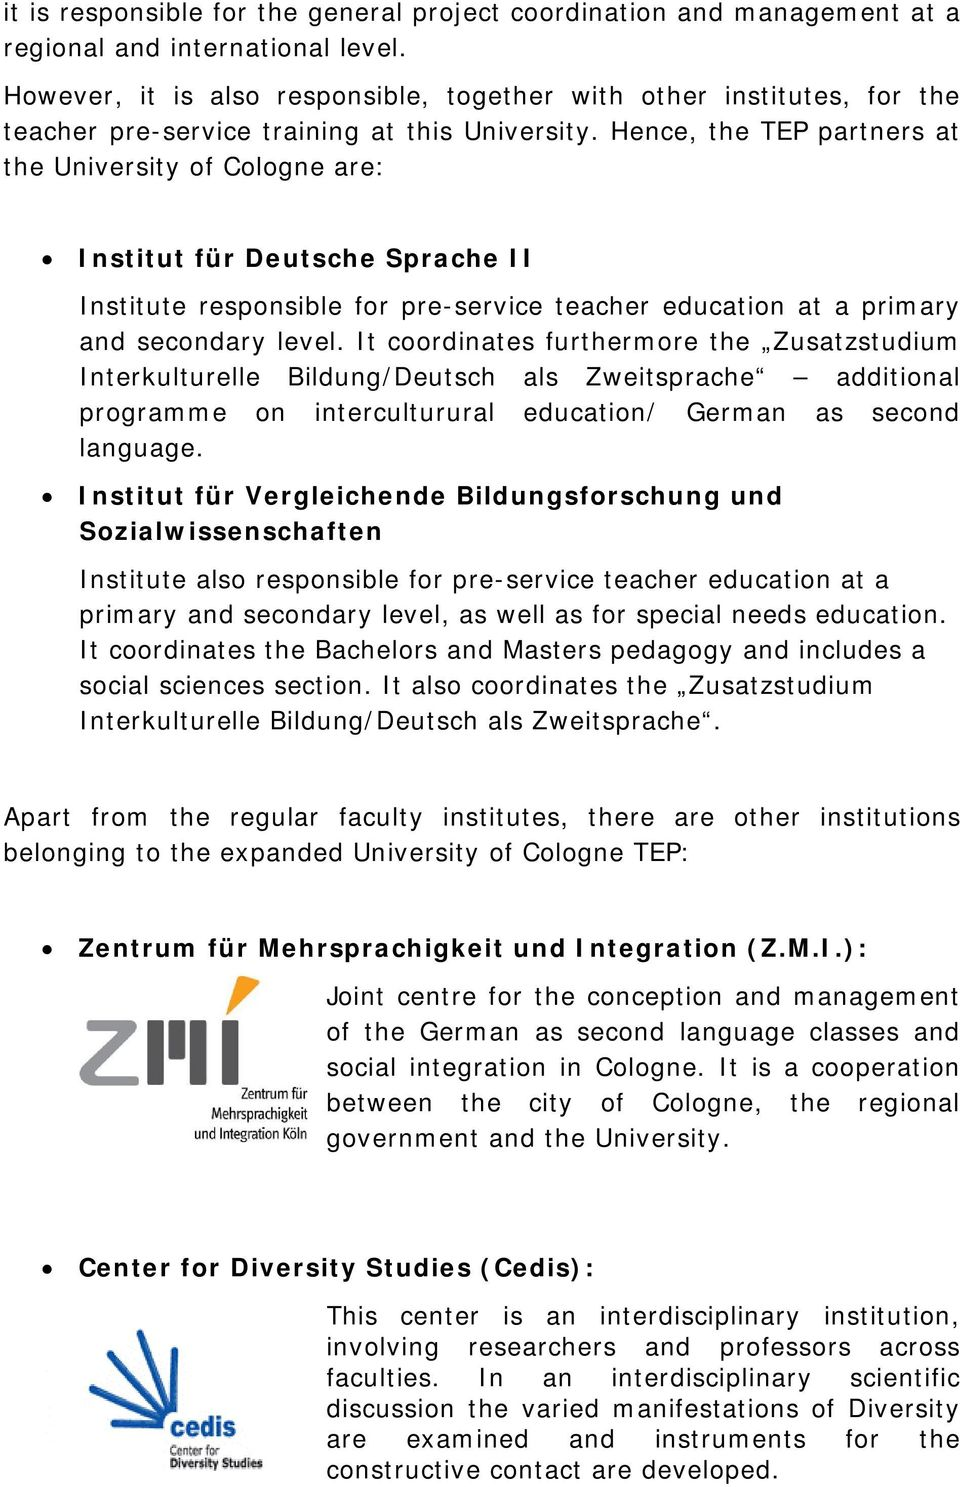 Hence, the partners at the University of Cologne are: Institut für Deutsche Sprache II Institute responsible for pre-service teacher education at a primary and secondary level.